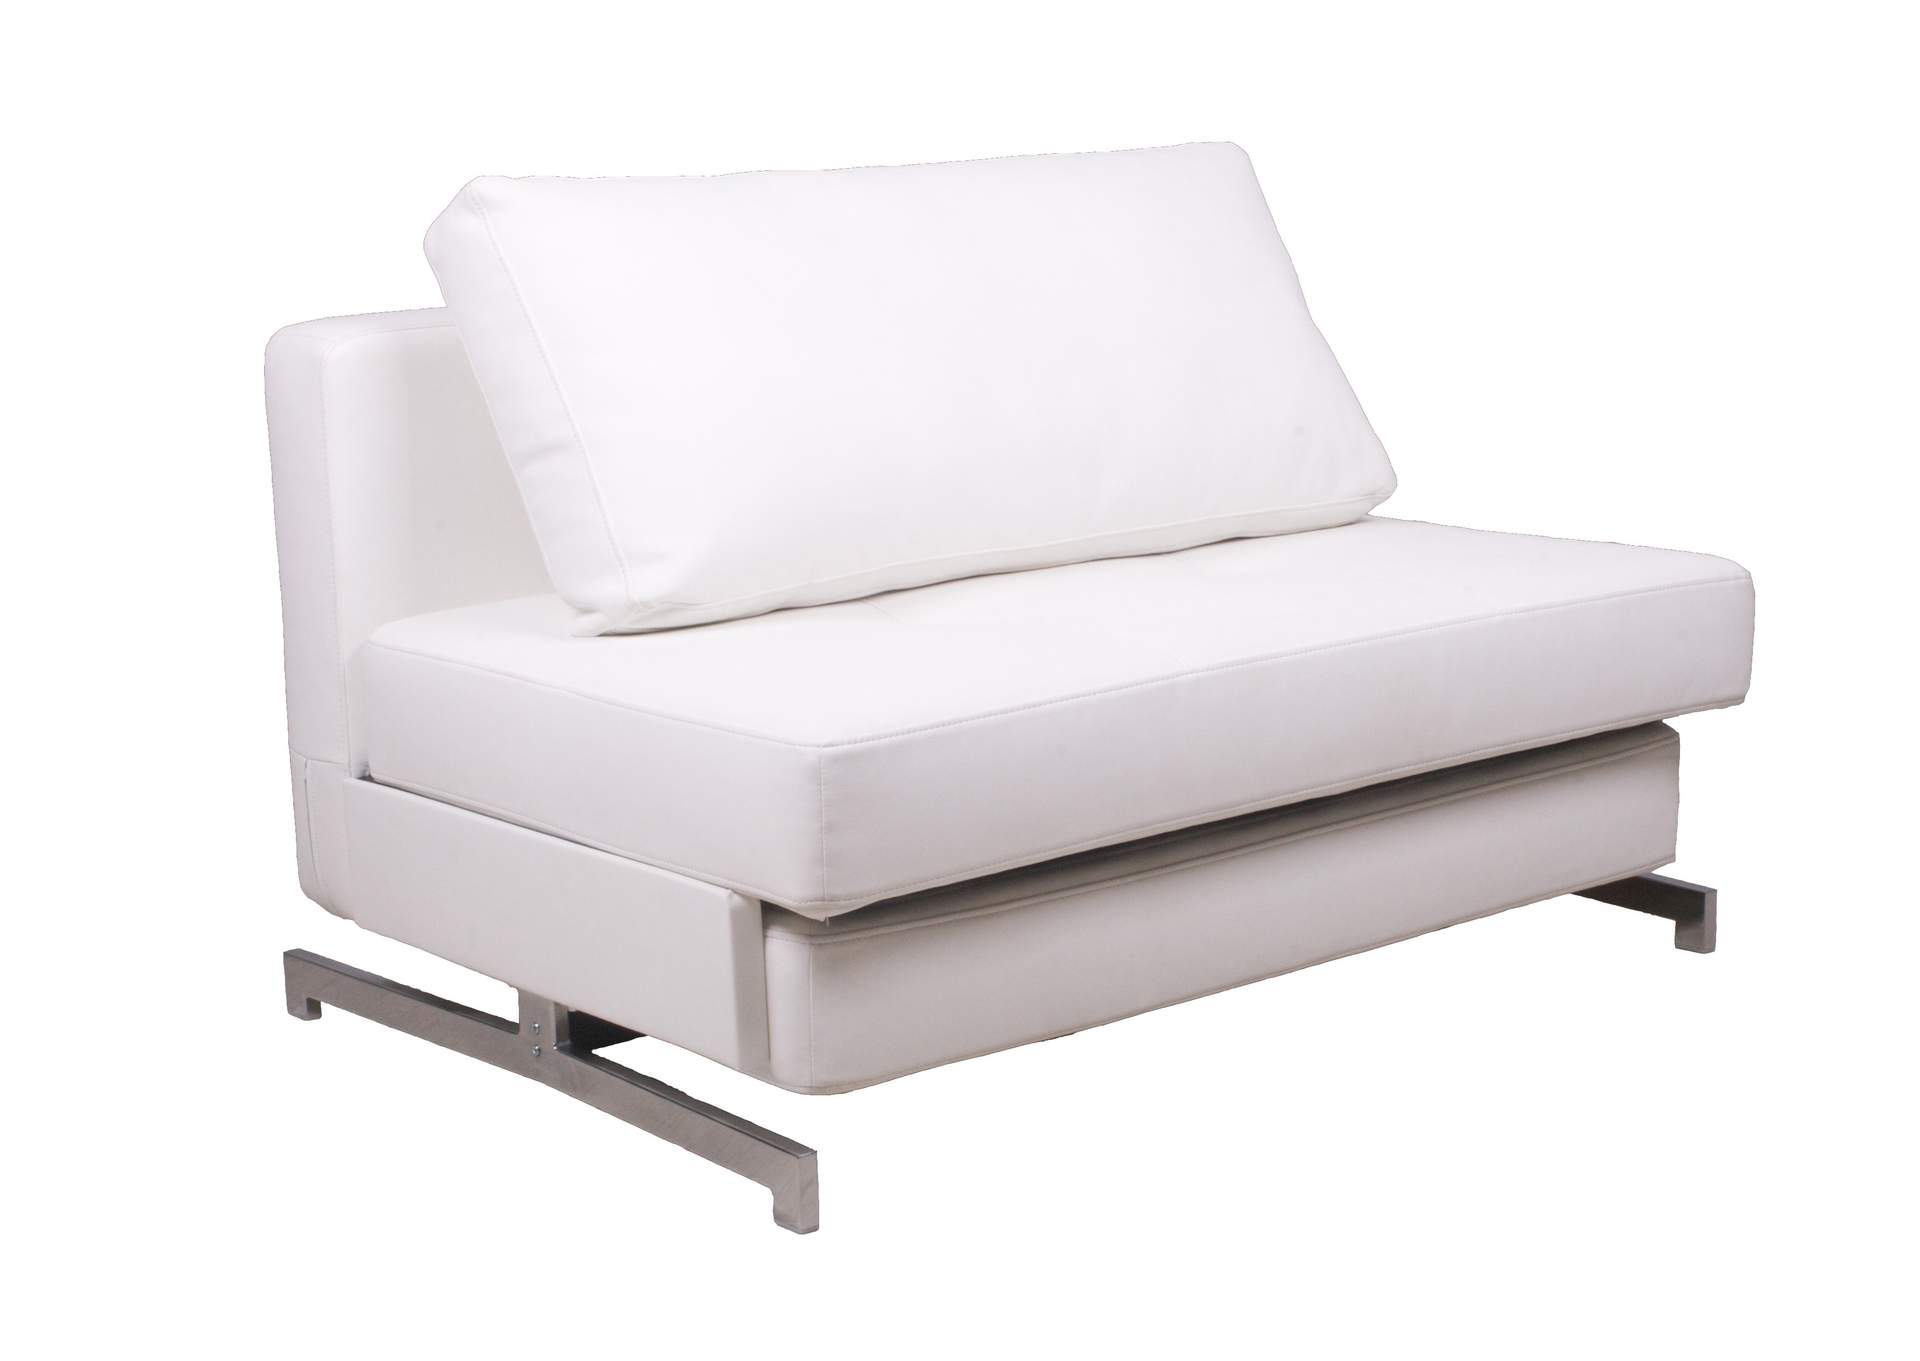 Premium Sofa Bed K43-1 in White Leatherette,J&M Furniture